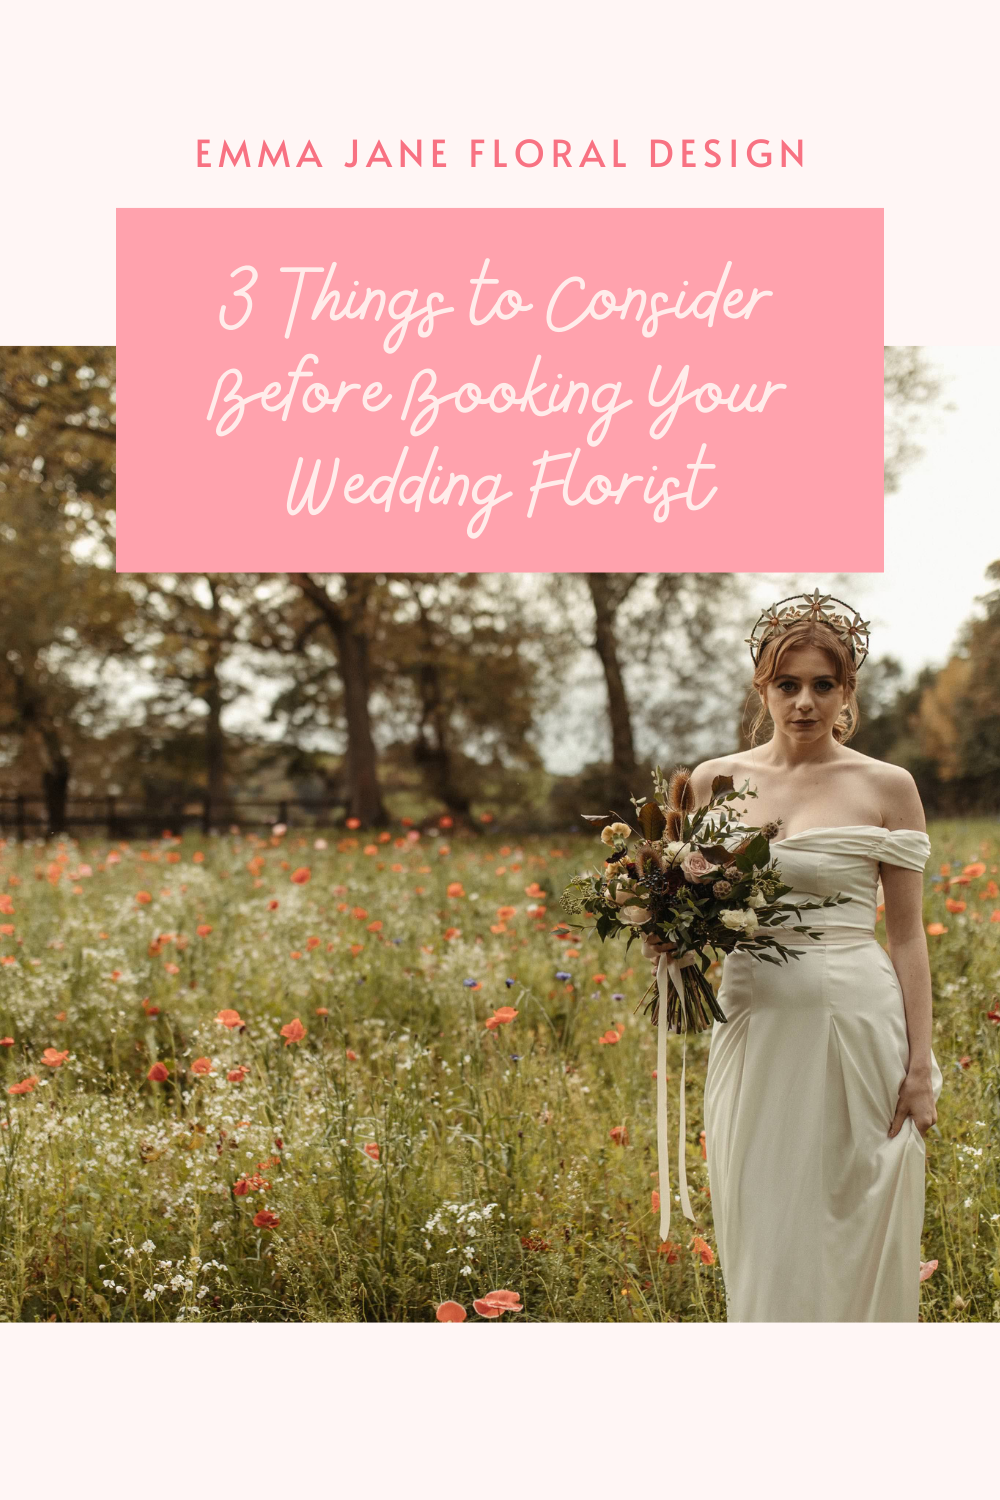 """Bride carrying bouquet in wild flower field with pink text reading """"3 things to consider before booking your wedding florist"""""""